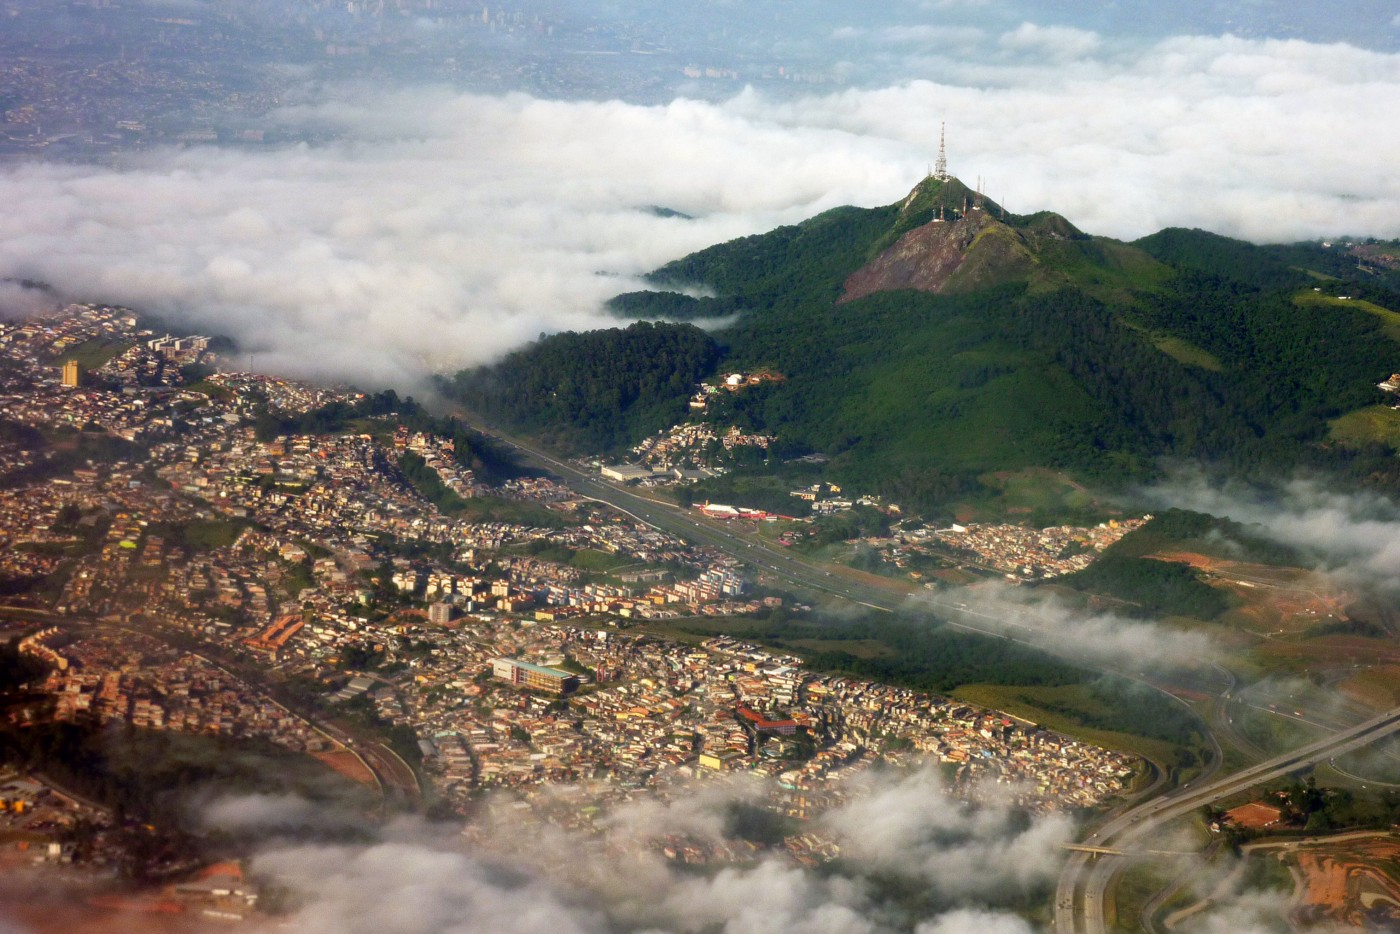 Jaguara Peak with a city beneath it.